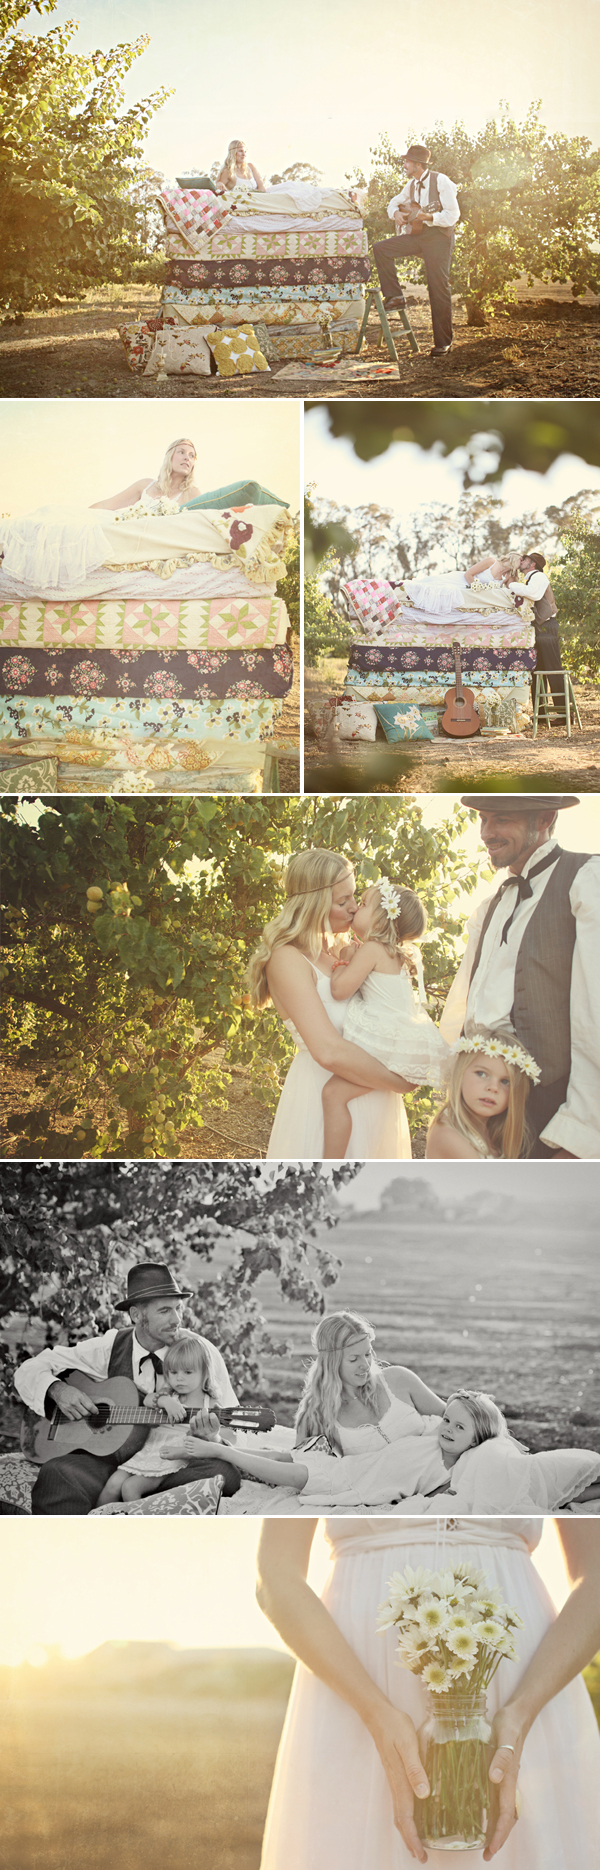 Princess and the pea fairytale engagement photo